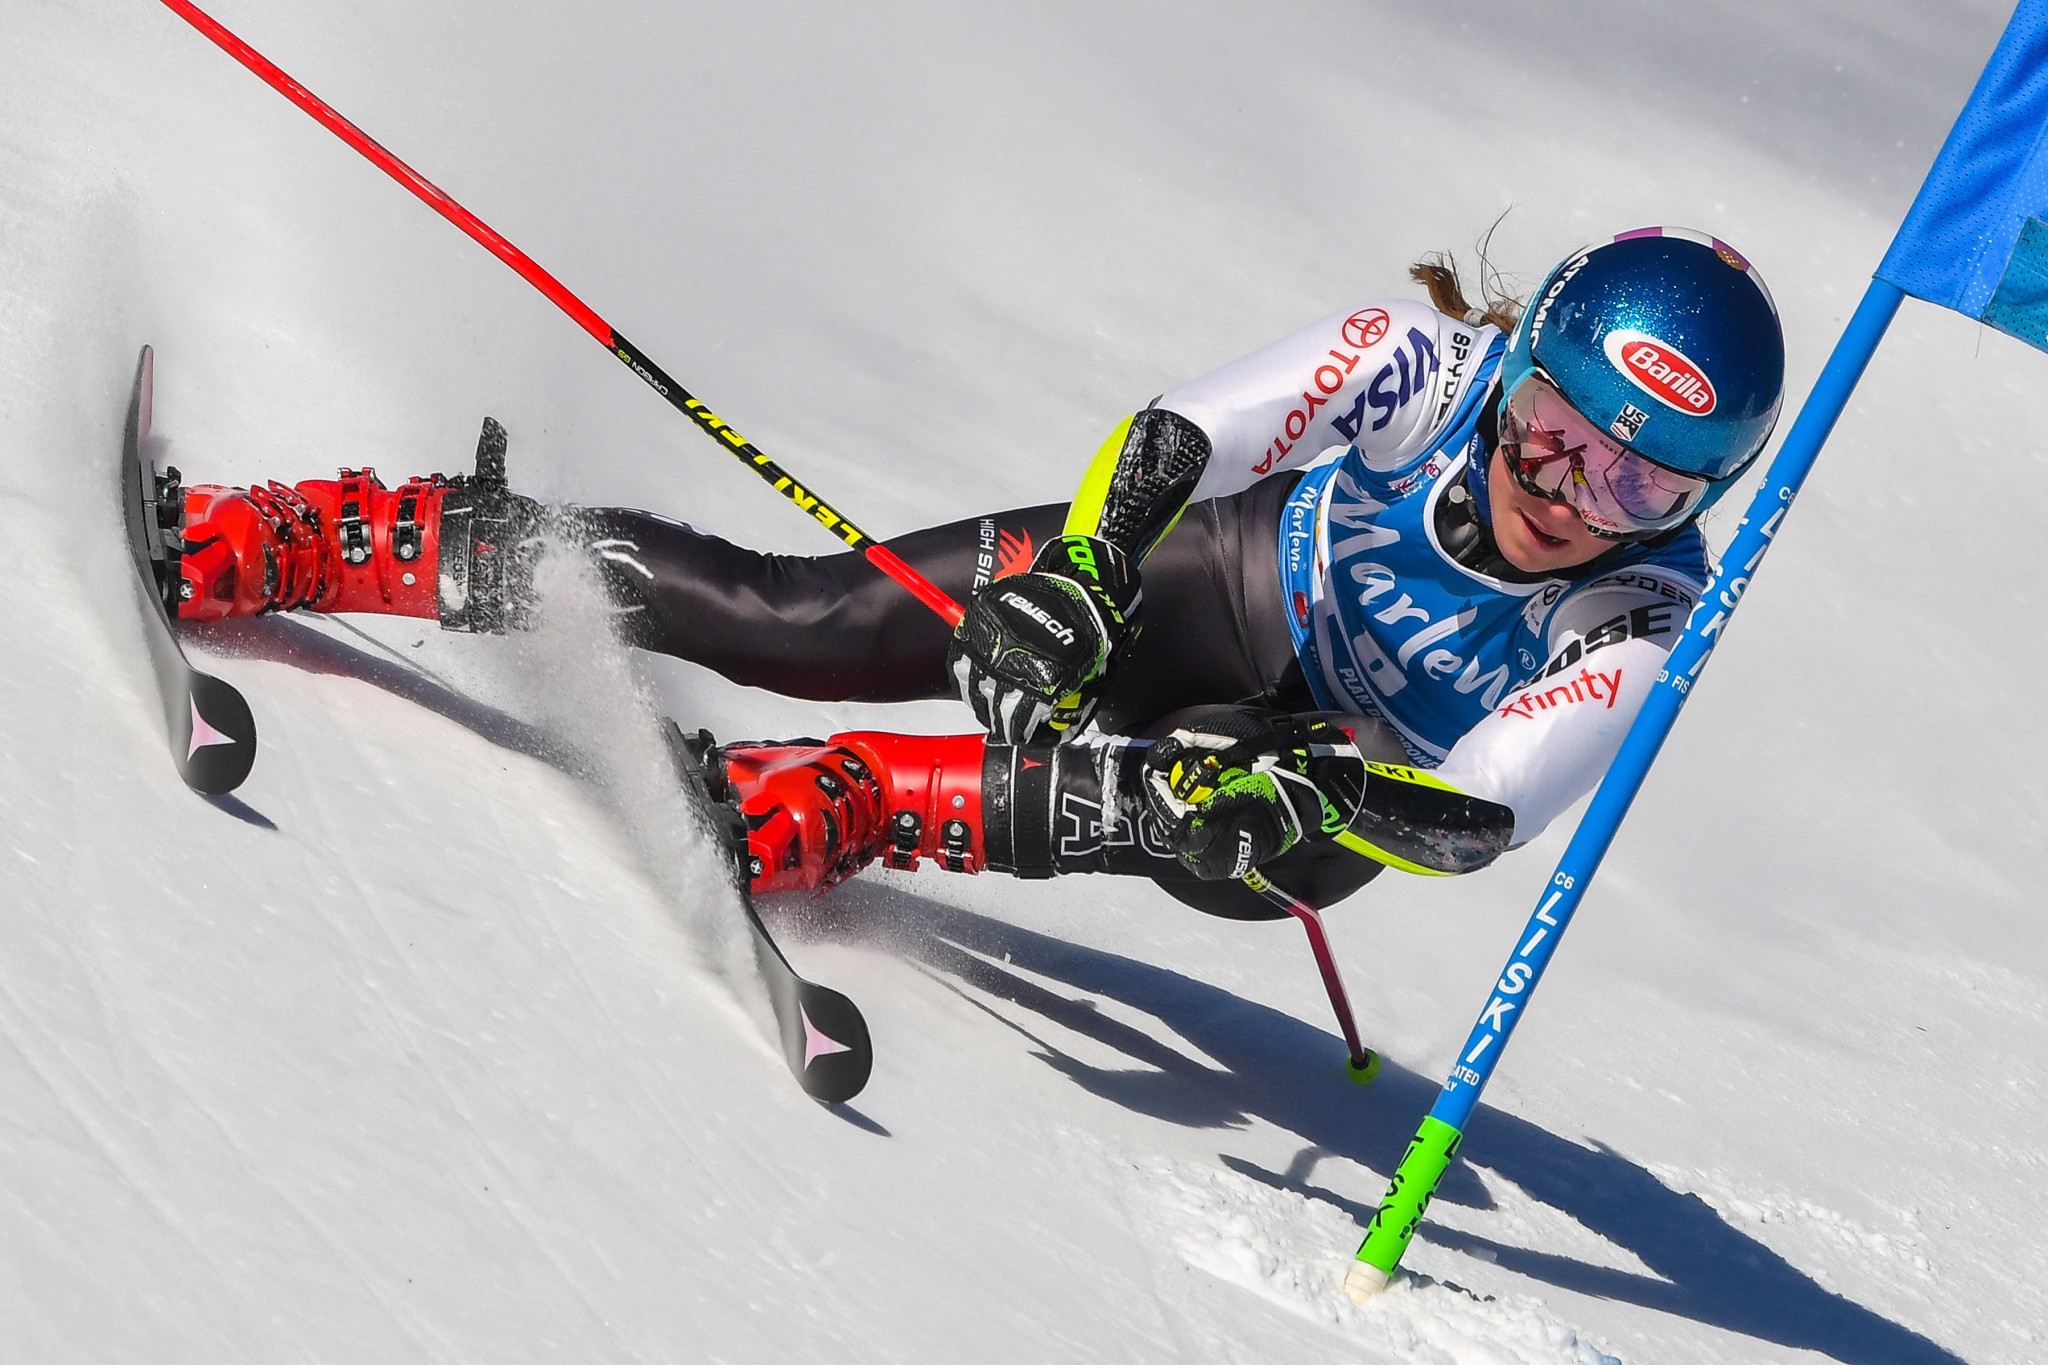 Mikaela Shiffrin converted her considerable first run lead to claim her 53rd World Cup victory ©Getty Images